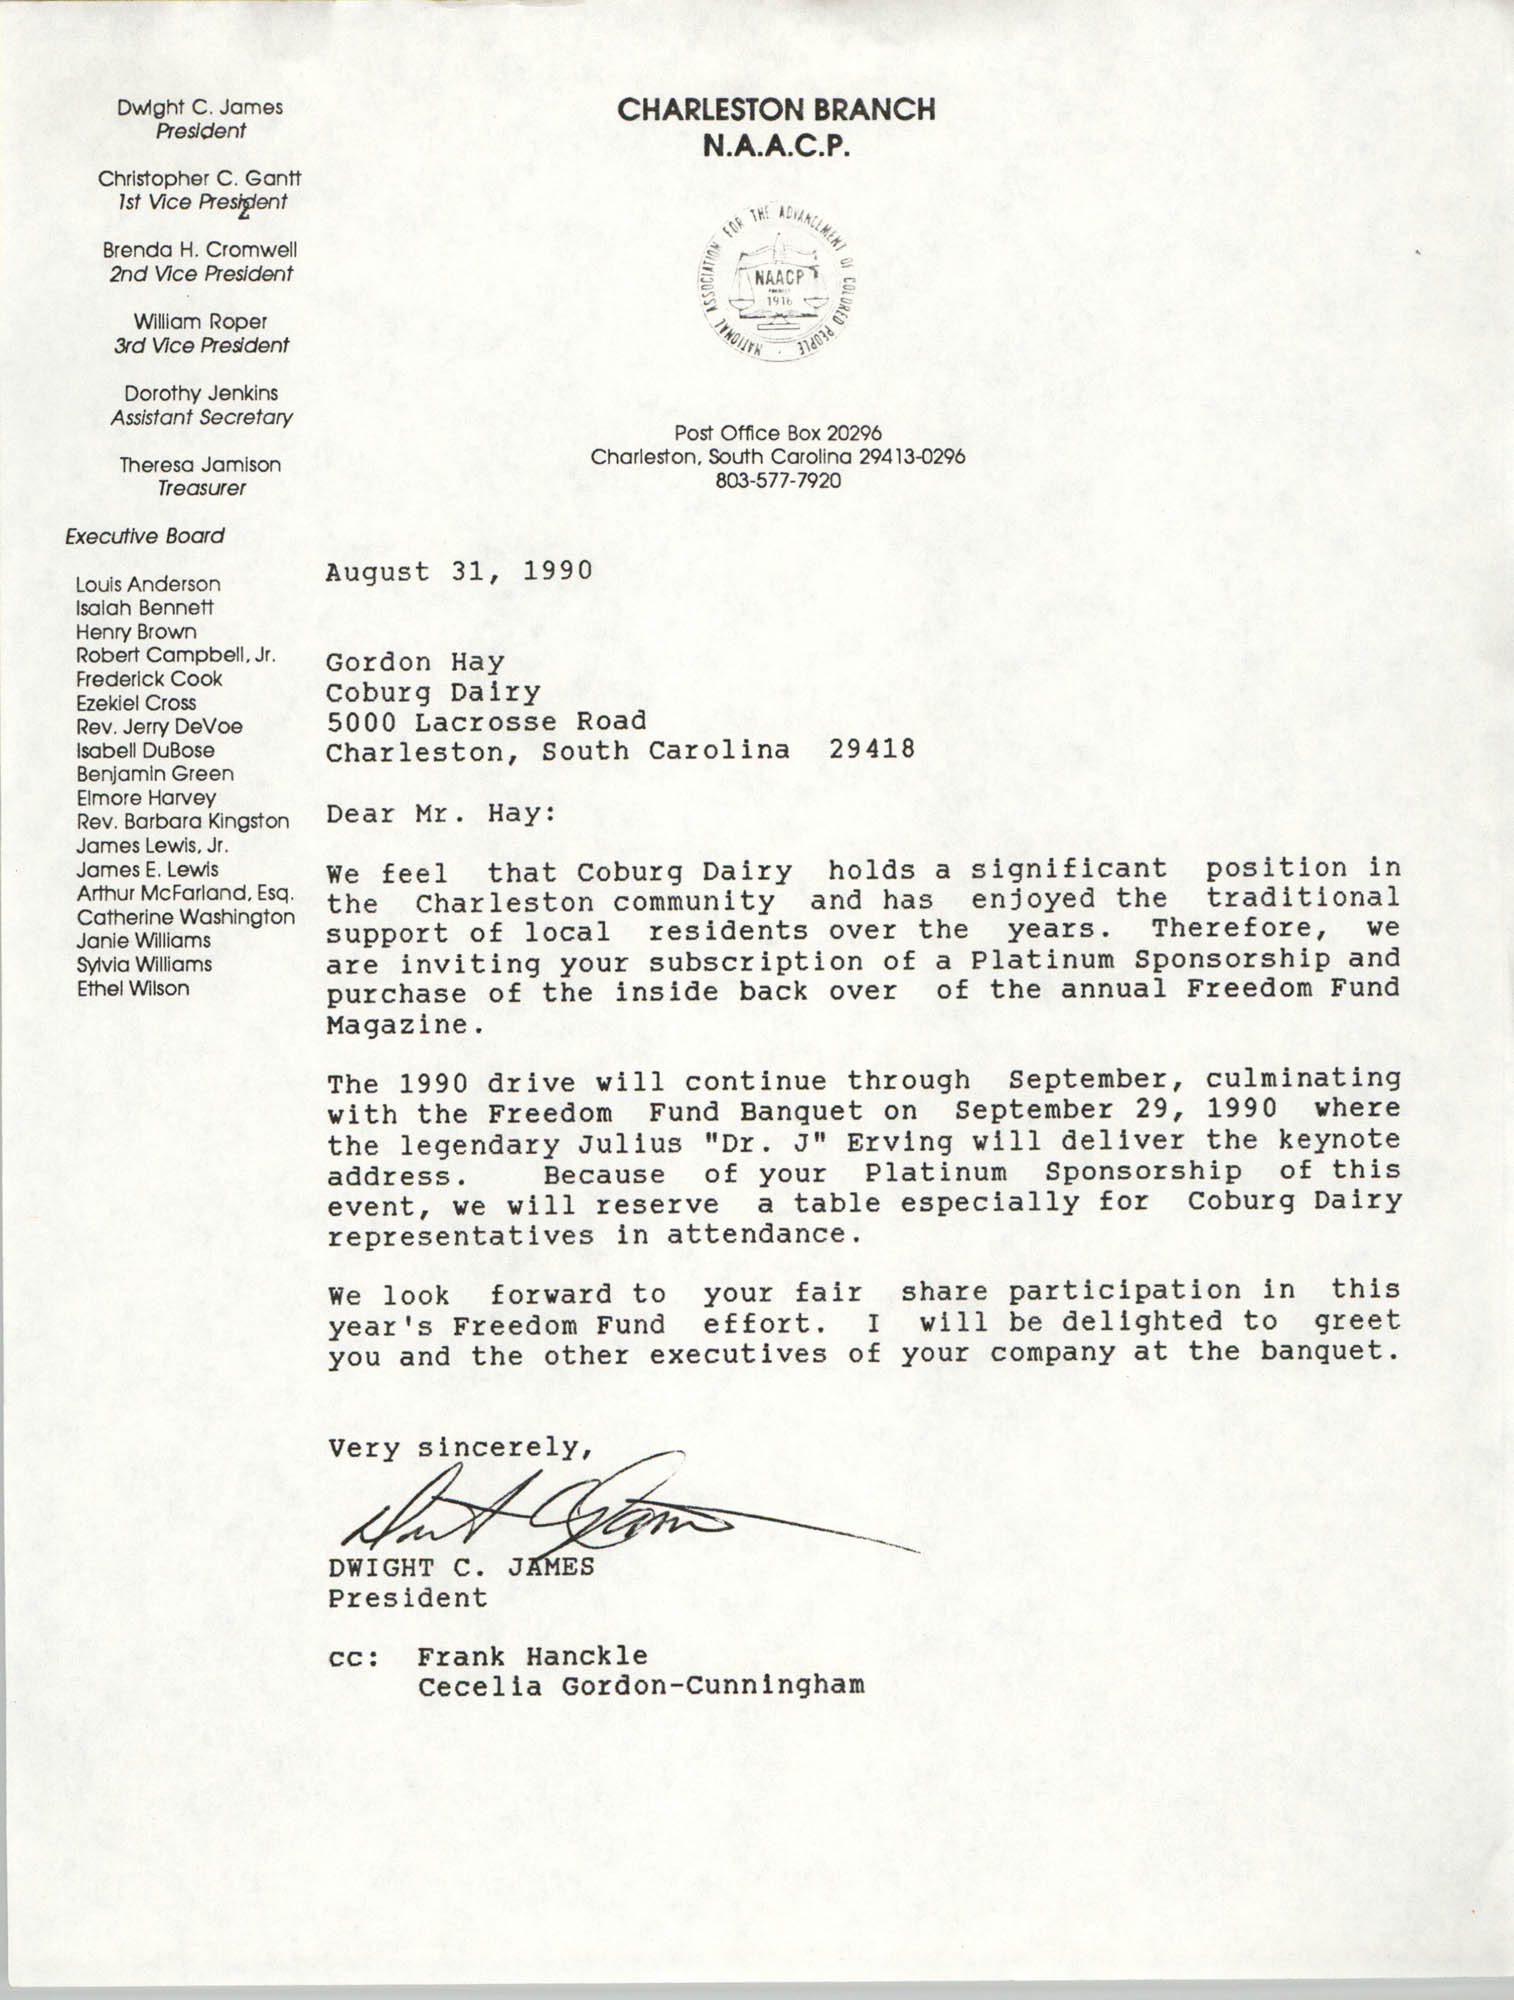 Letter from Dwight C. James to Gordon Hay, August 31, 1990